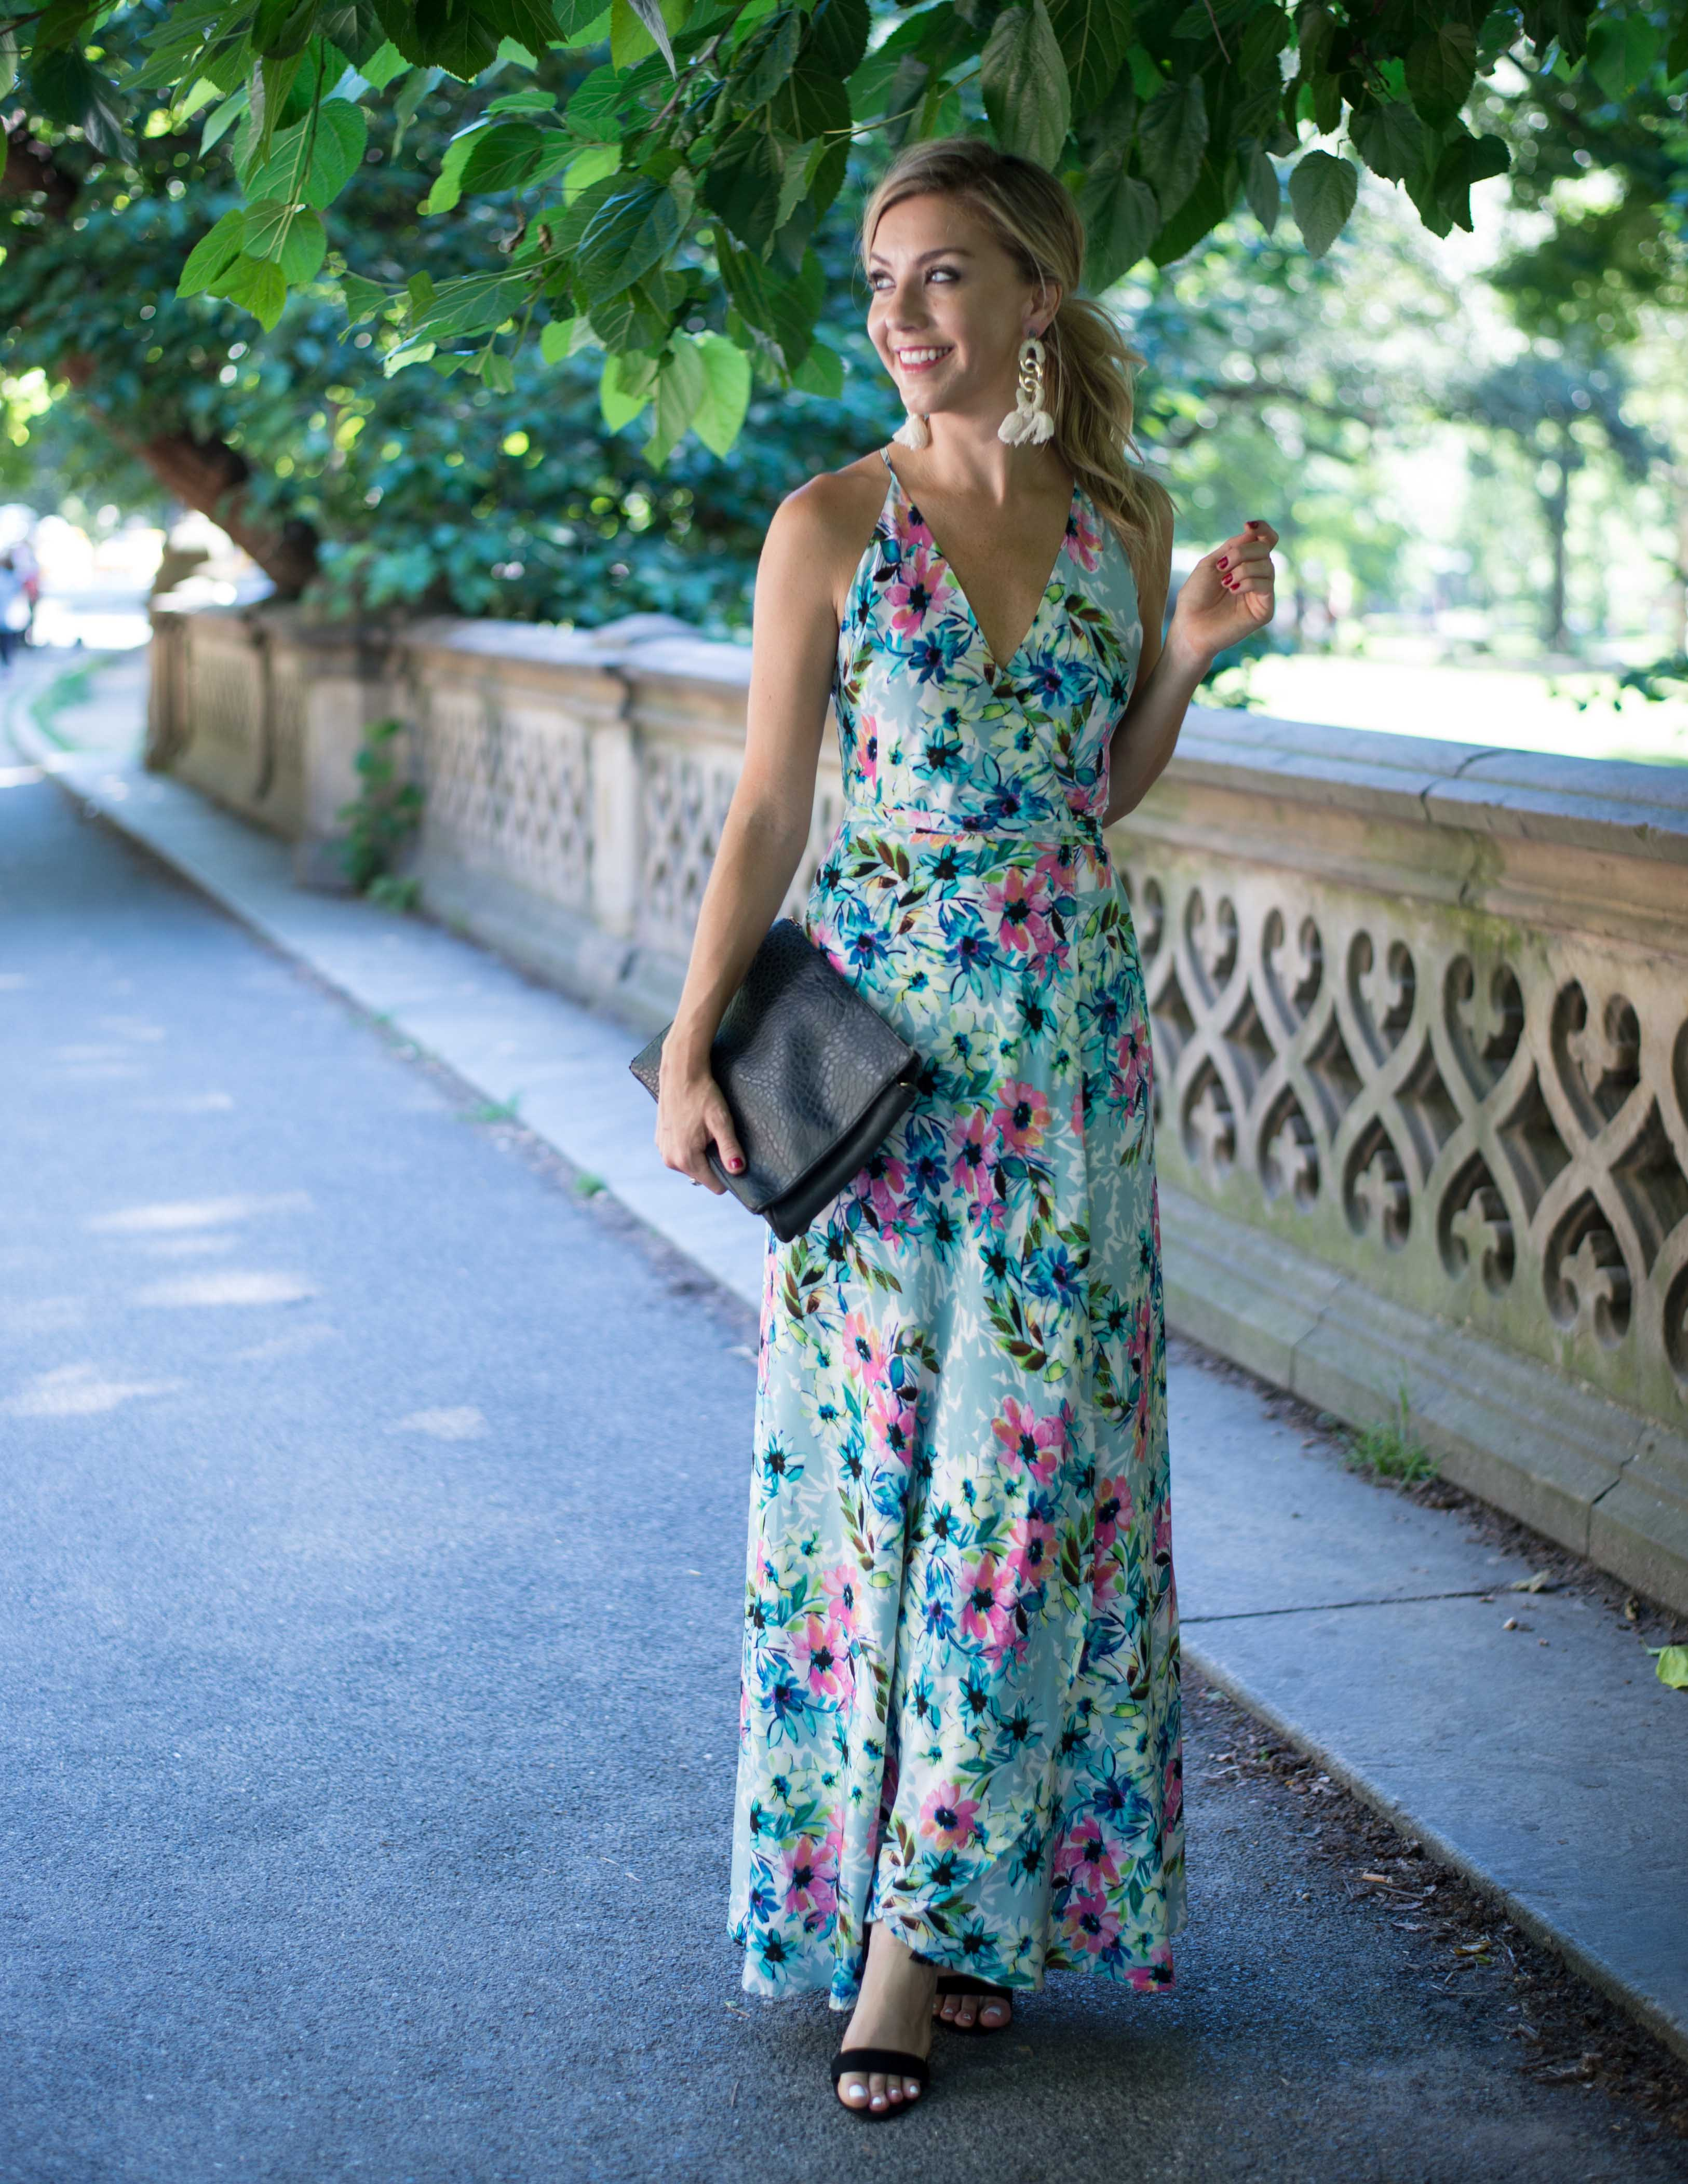 Best Wedding Day Outfits For Guests Pictures Inspiration - Wedding ...